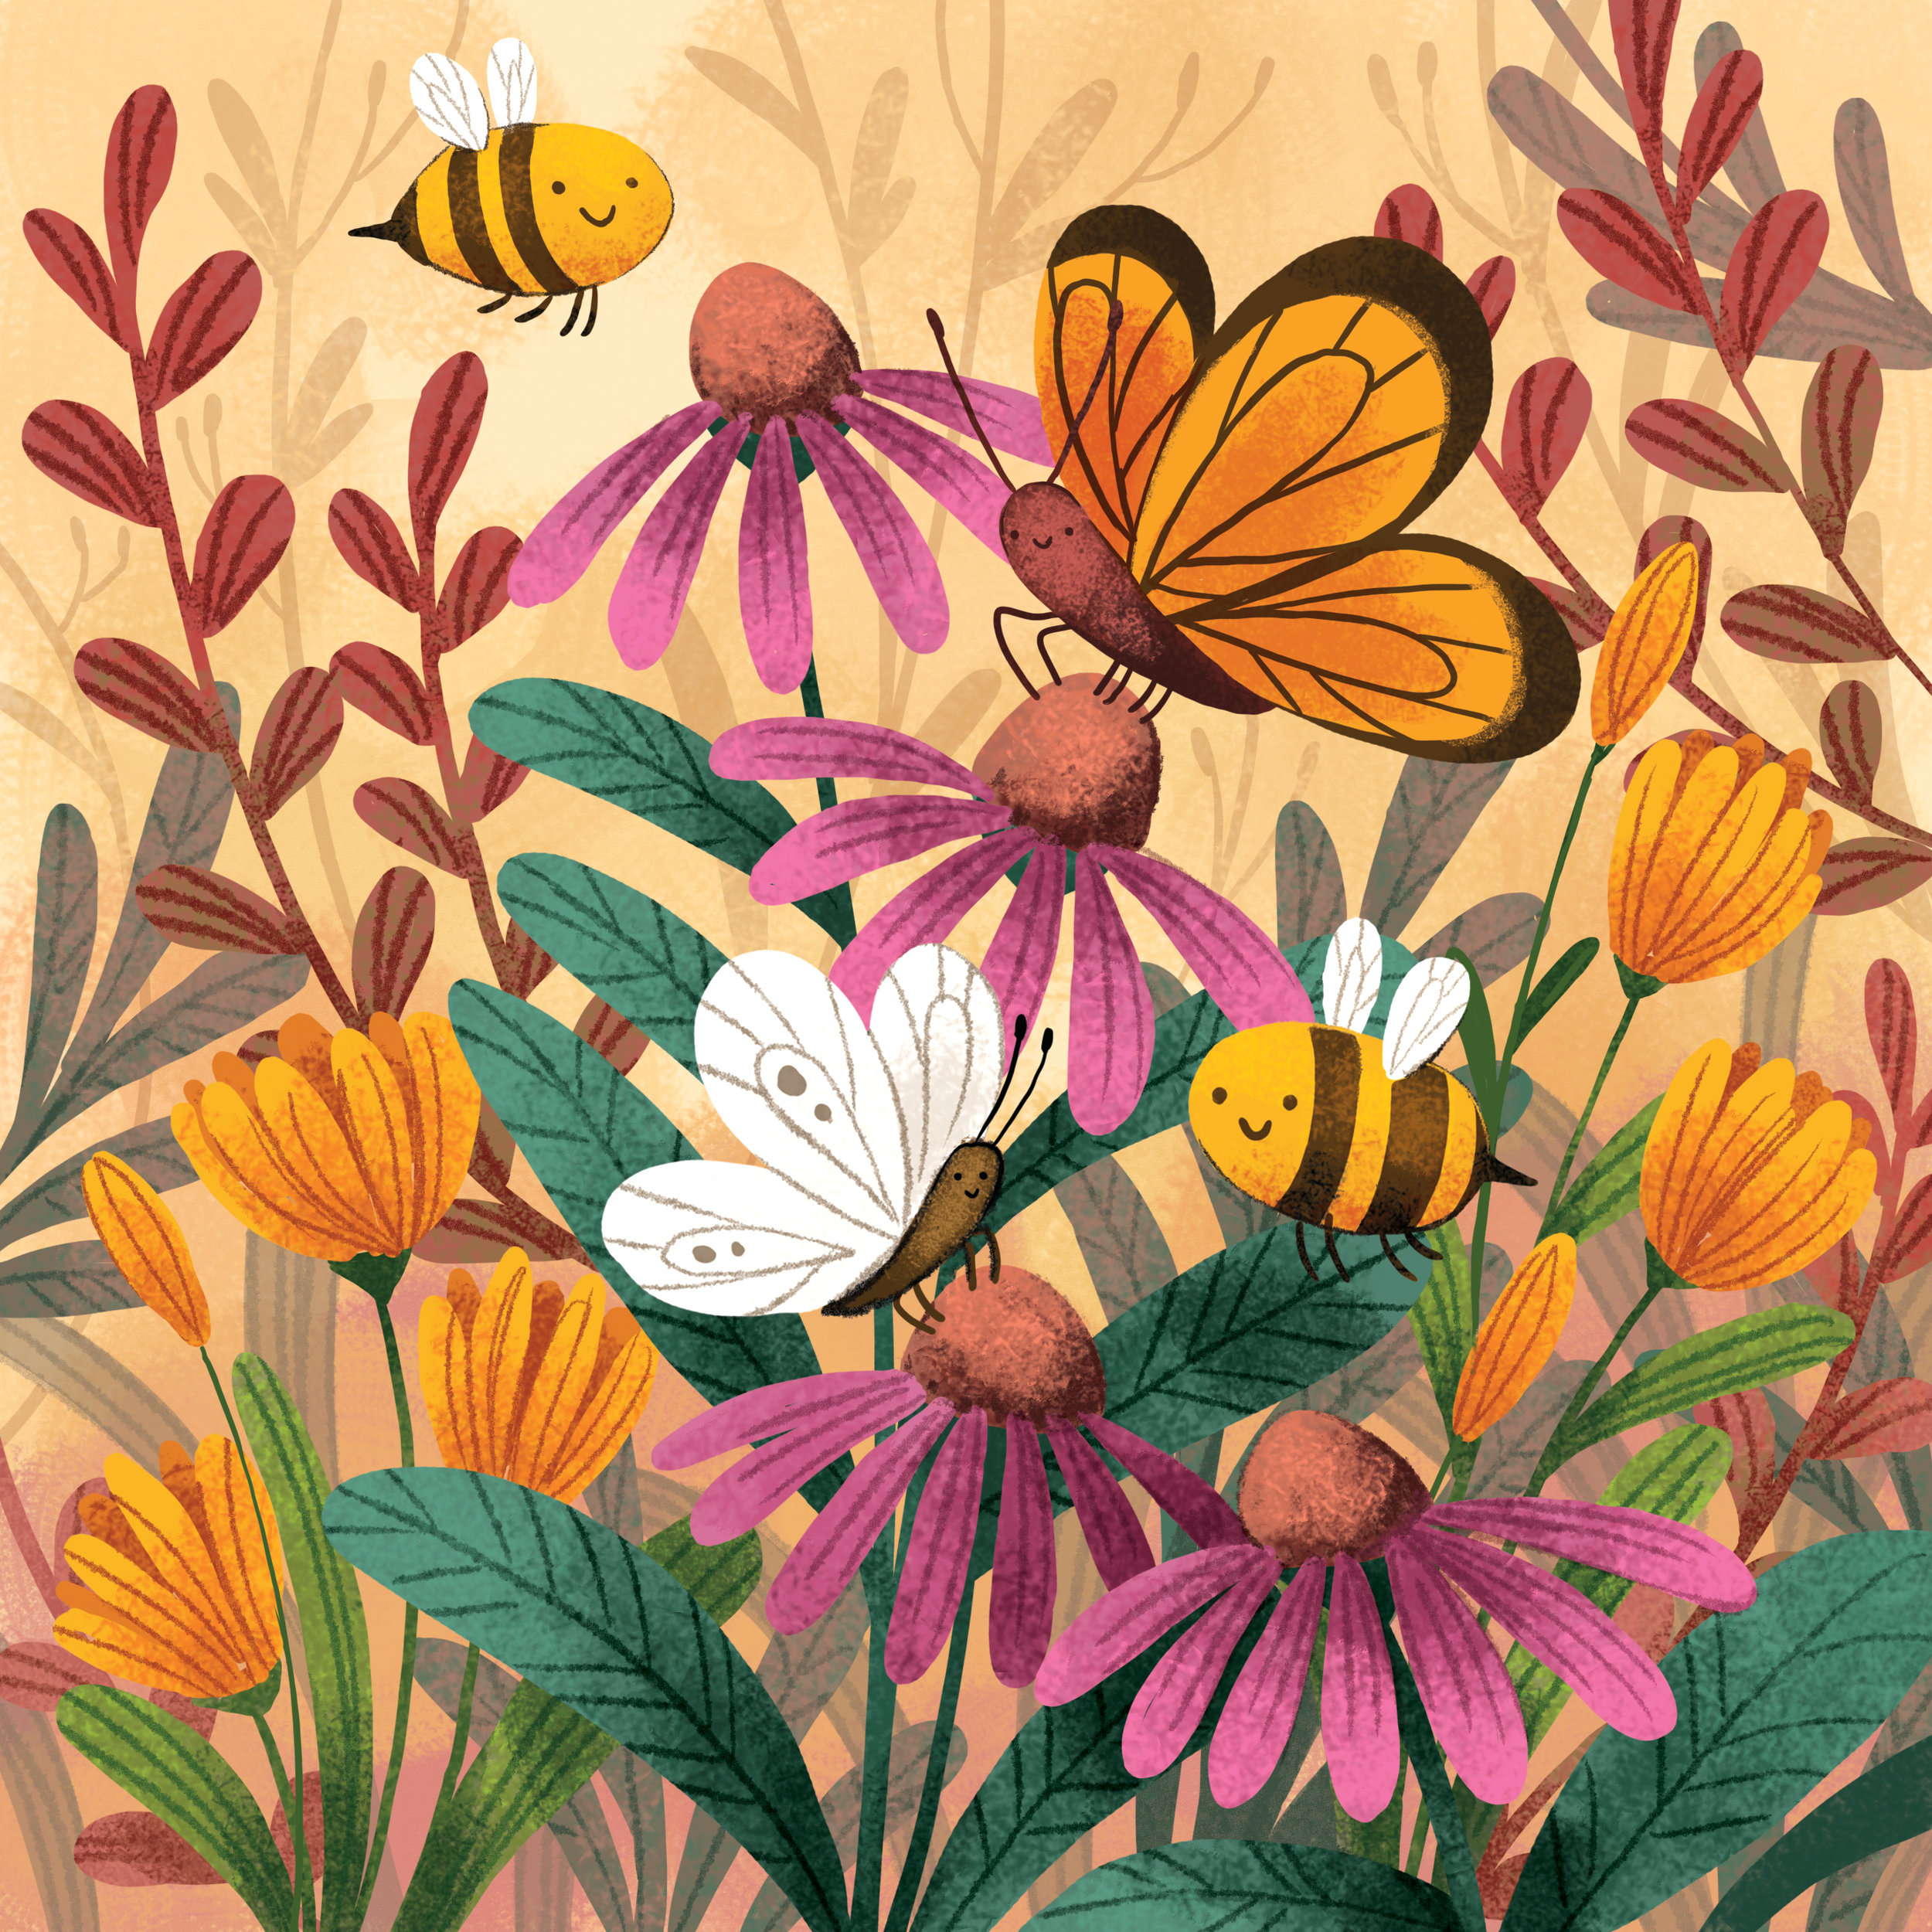 Bugs_butterfly_flowers_bees_outdoors_outside.jpg